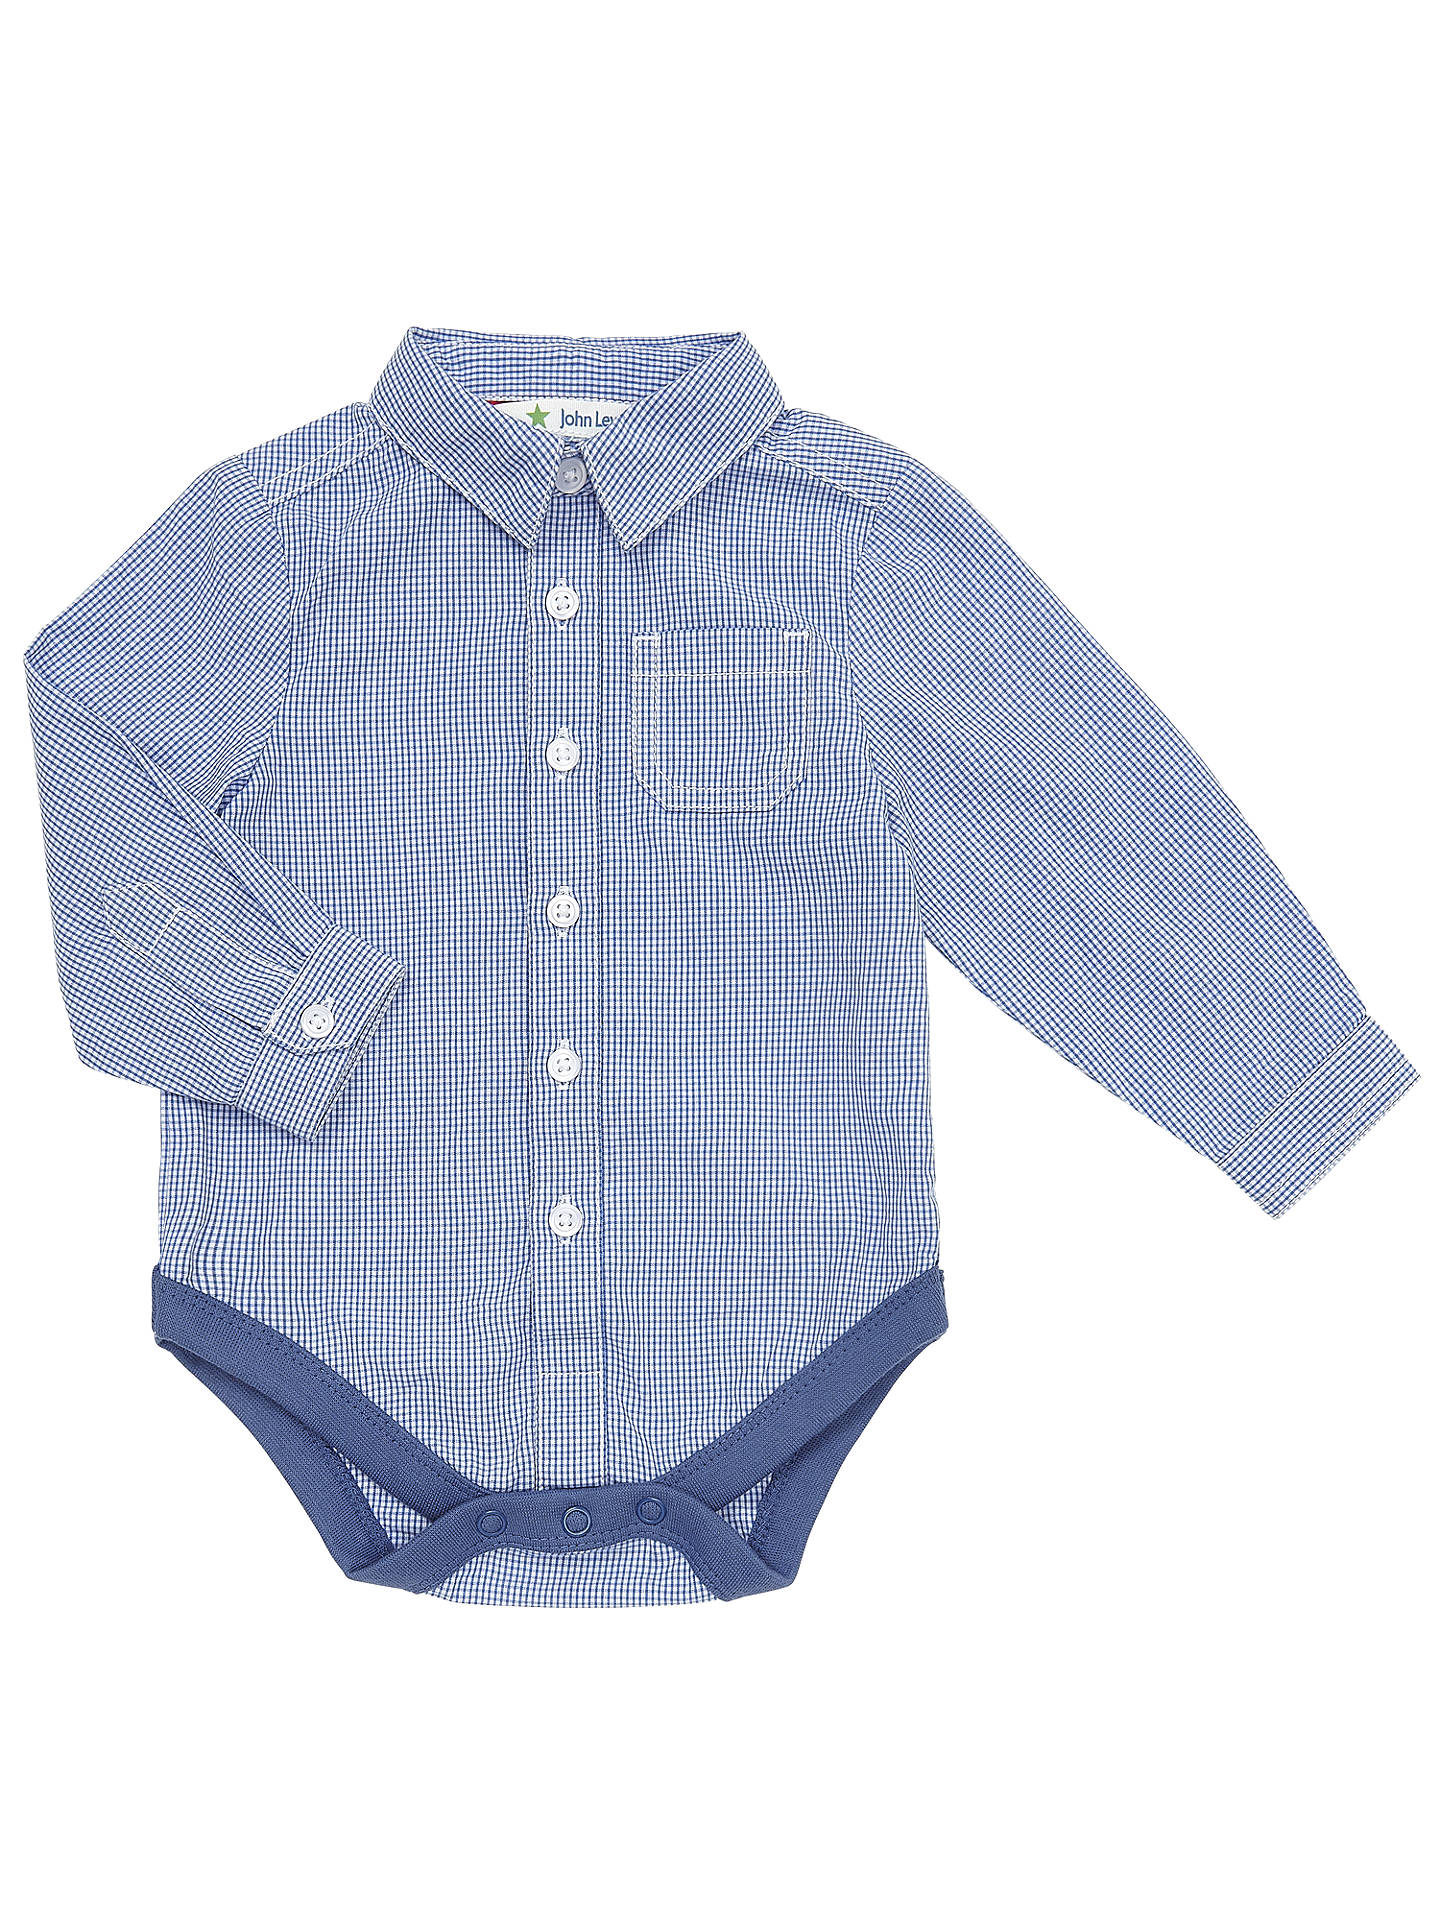 John Lewis Babys Check Shirt Bodysuit Bluewhite At John Lewis